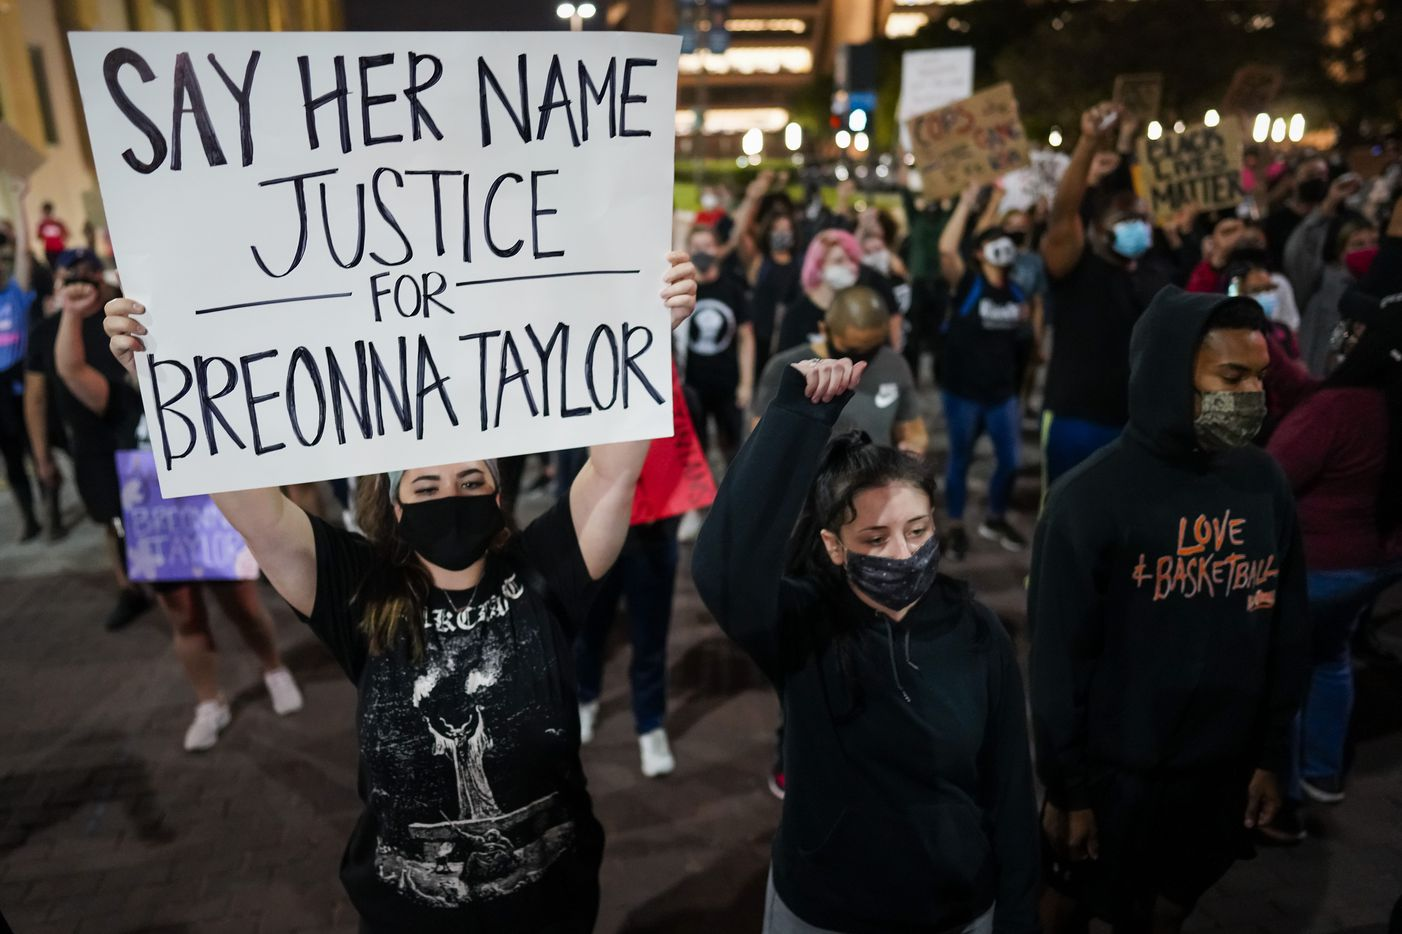 Demonstrators march on Ervay Street near Dallas City Hall after a Kentucky grand jury brought no charges against Louisville police for the killing of Breonna Taylor on Wednesday, Sept. 23, 2020.